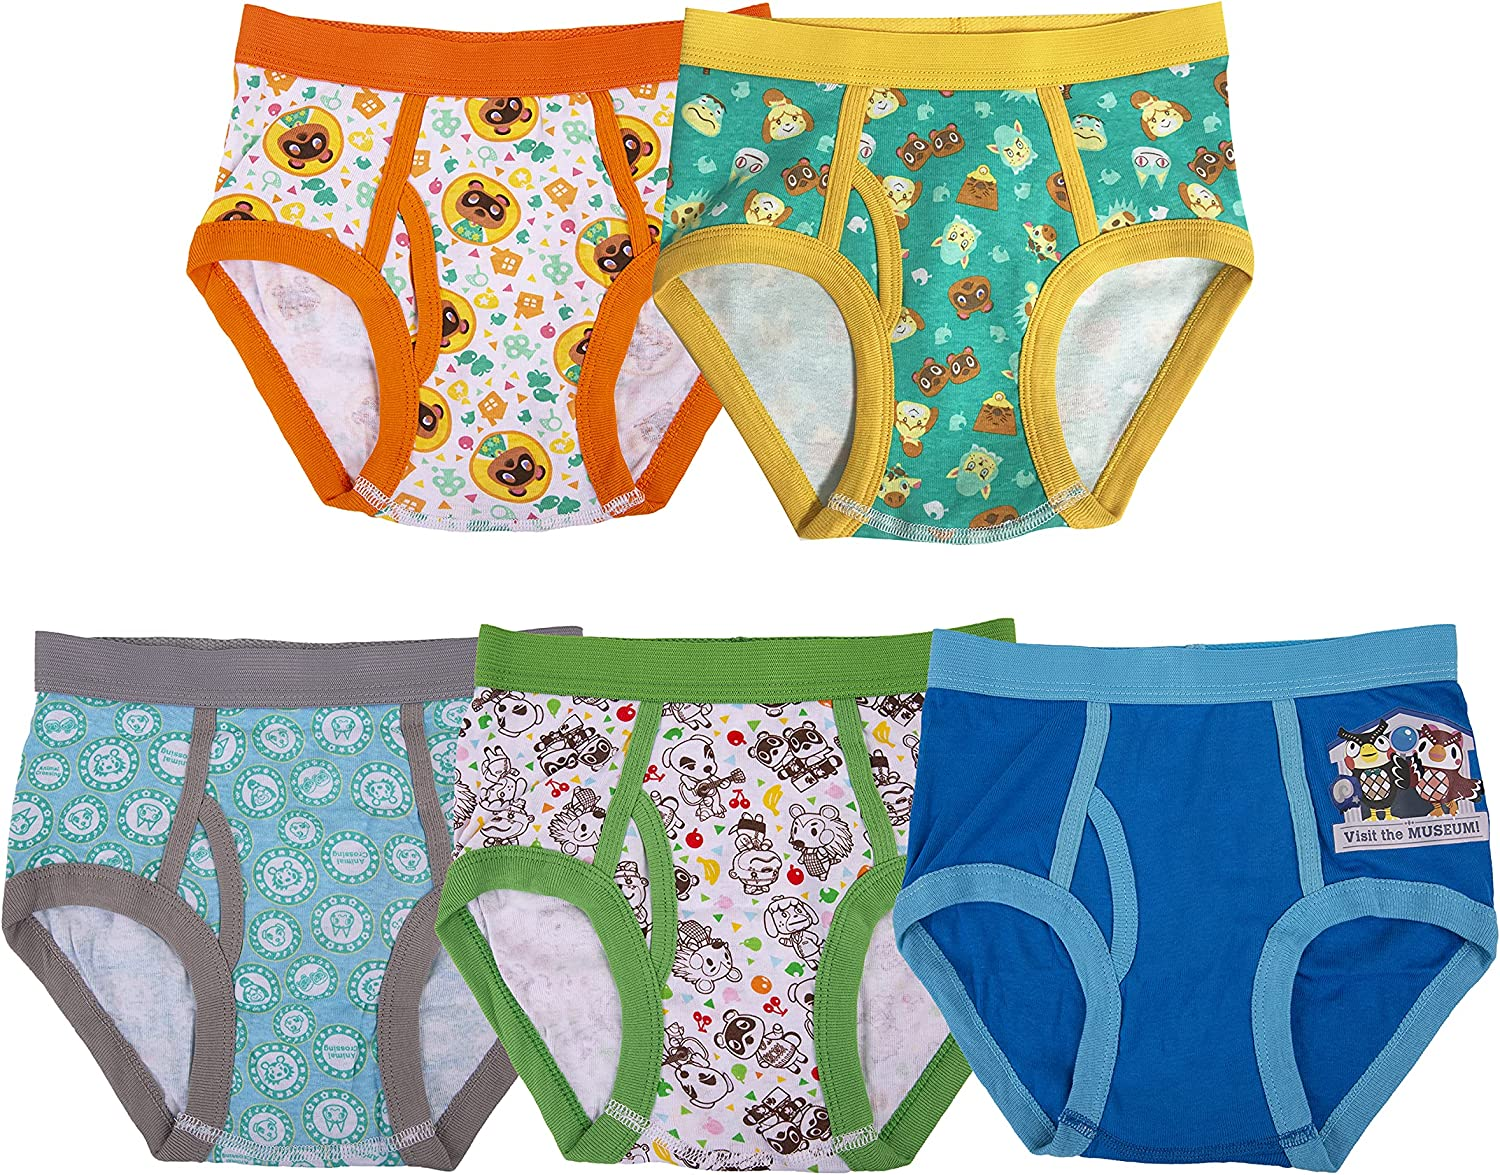 Nintendo Max 71% OFF Animal Crossing Underwear Multipacks Boys New products, world's highest quality popular!